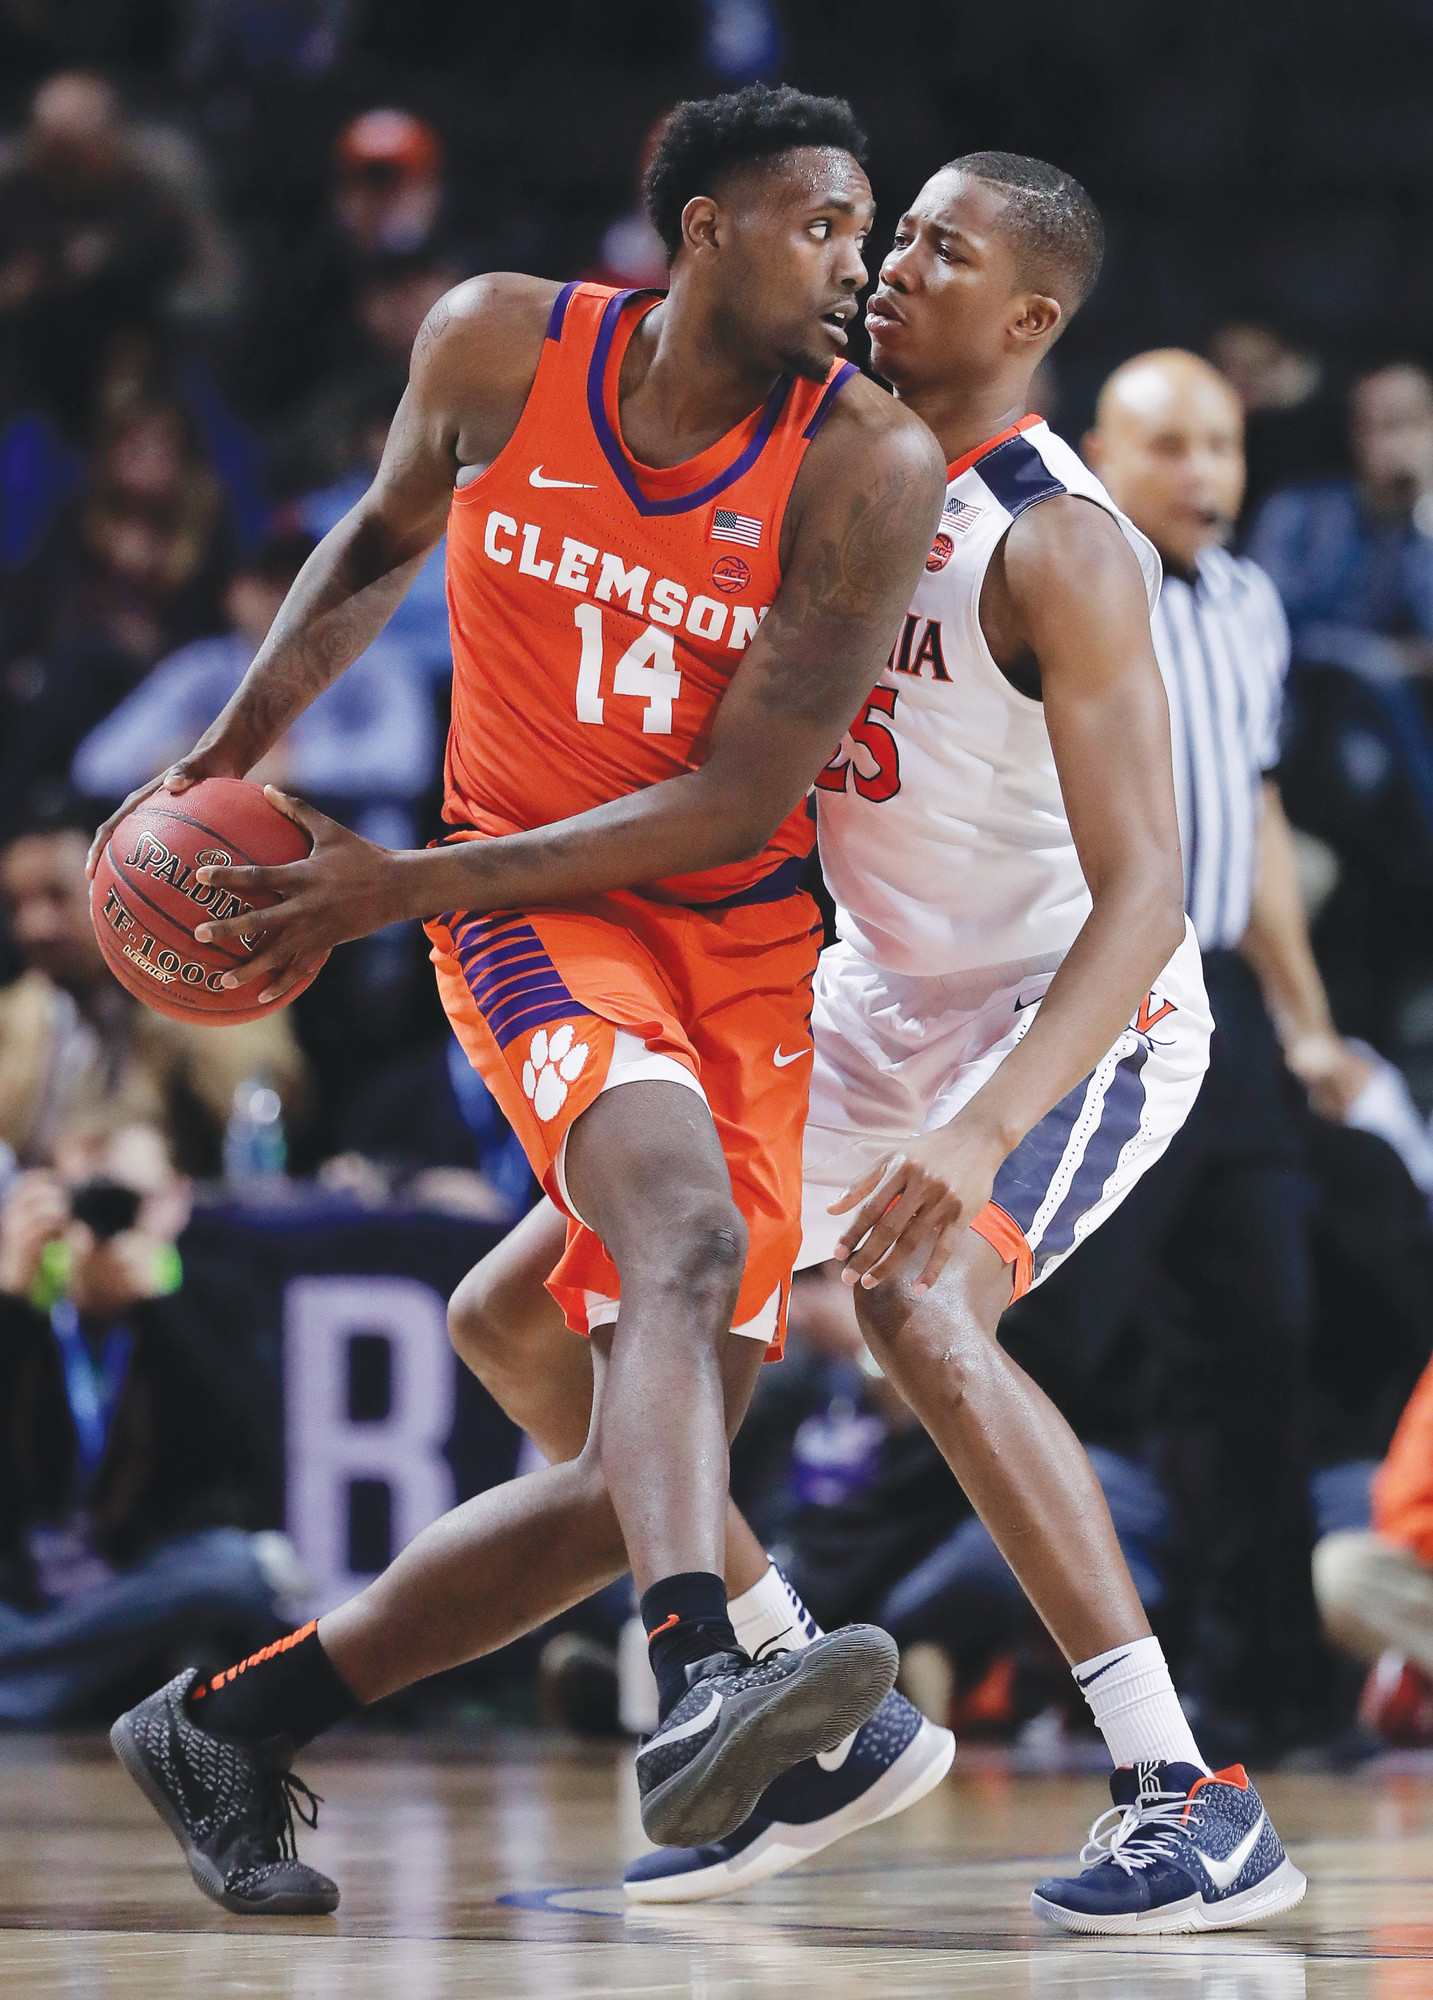 The Associated PressClemson forward Elijah Thomas (14) and the rest of the Tigers are the No. 5 seed in the Midwest Regional and will take on No. 12 New Mexico State on Friday in the first round of the NCAA tournament. The game will be played in San Diego.